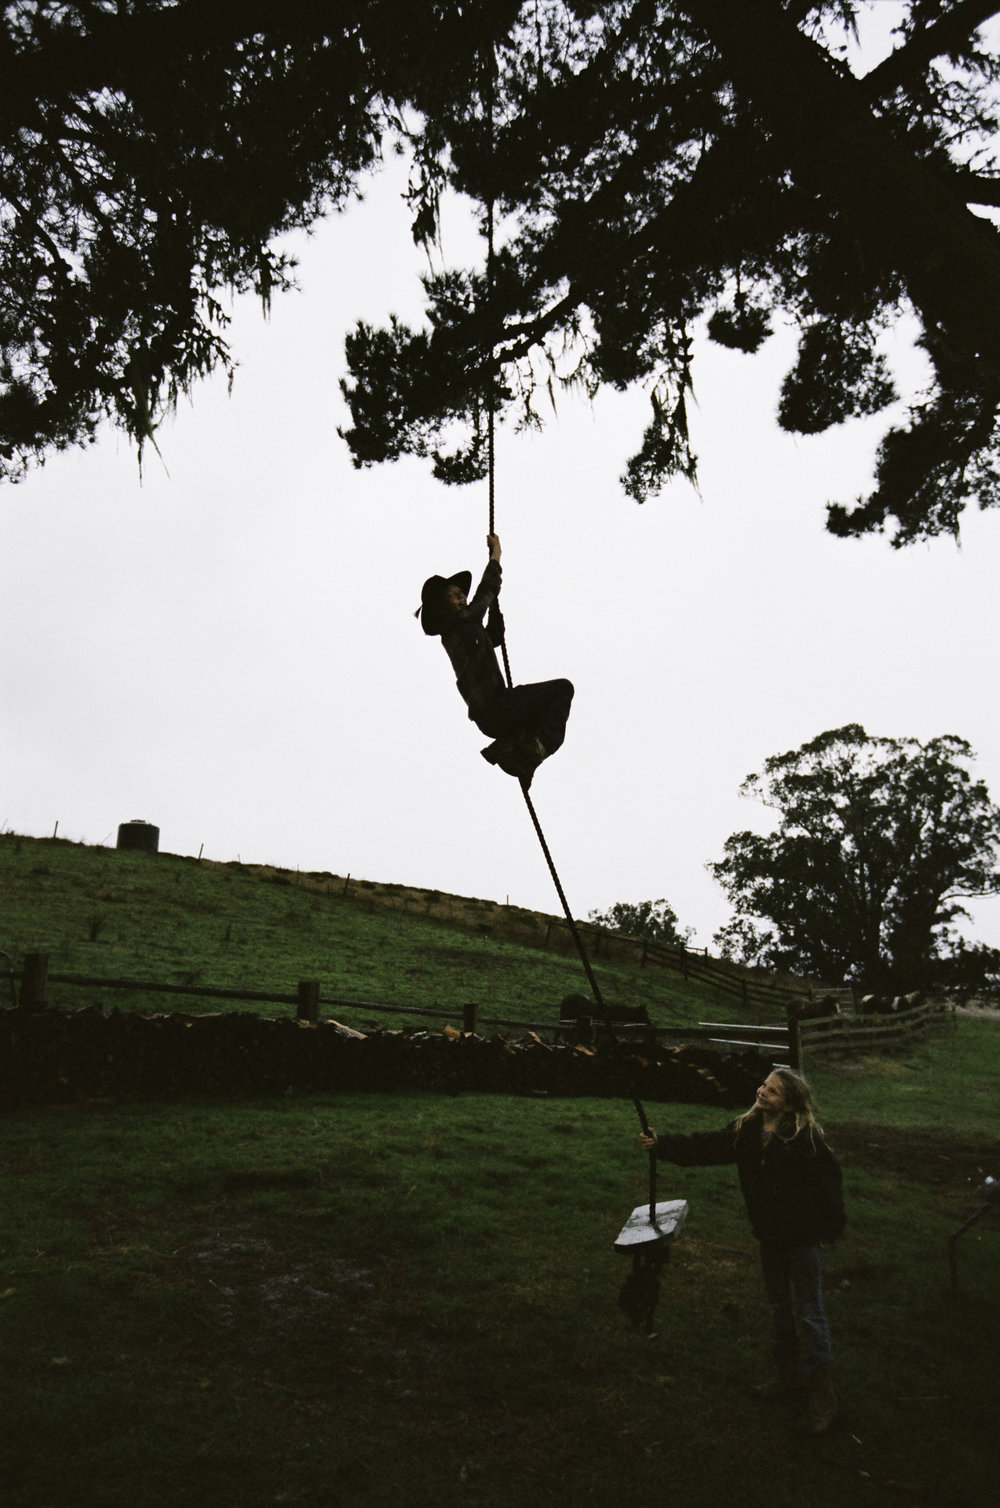 Larry, one of four kids, climbs the swing while his sister, Quill, watches. - San Gregorio, CA